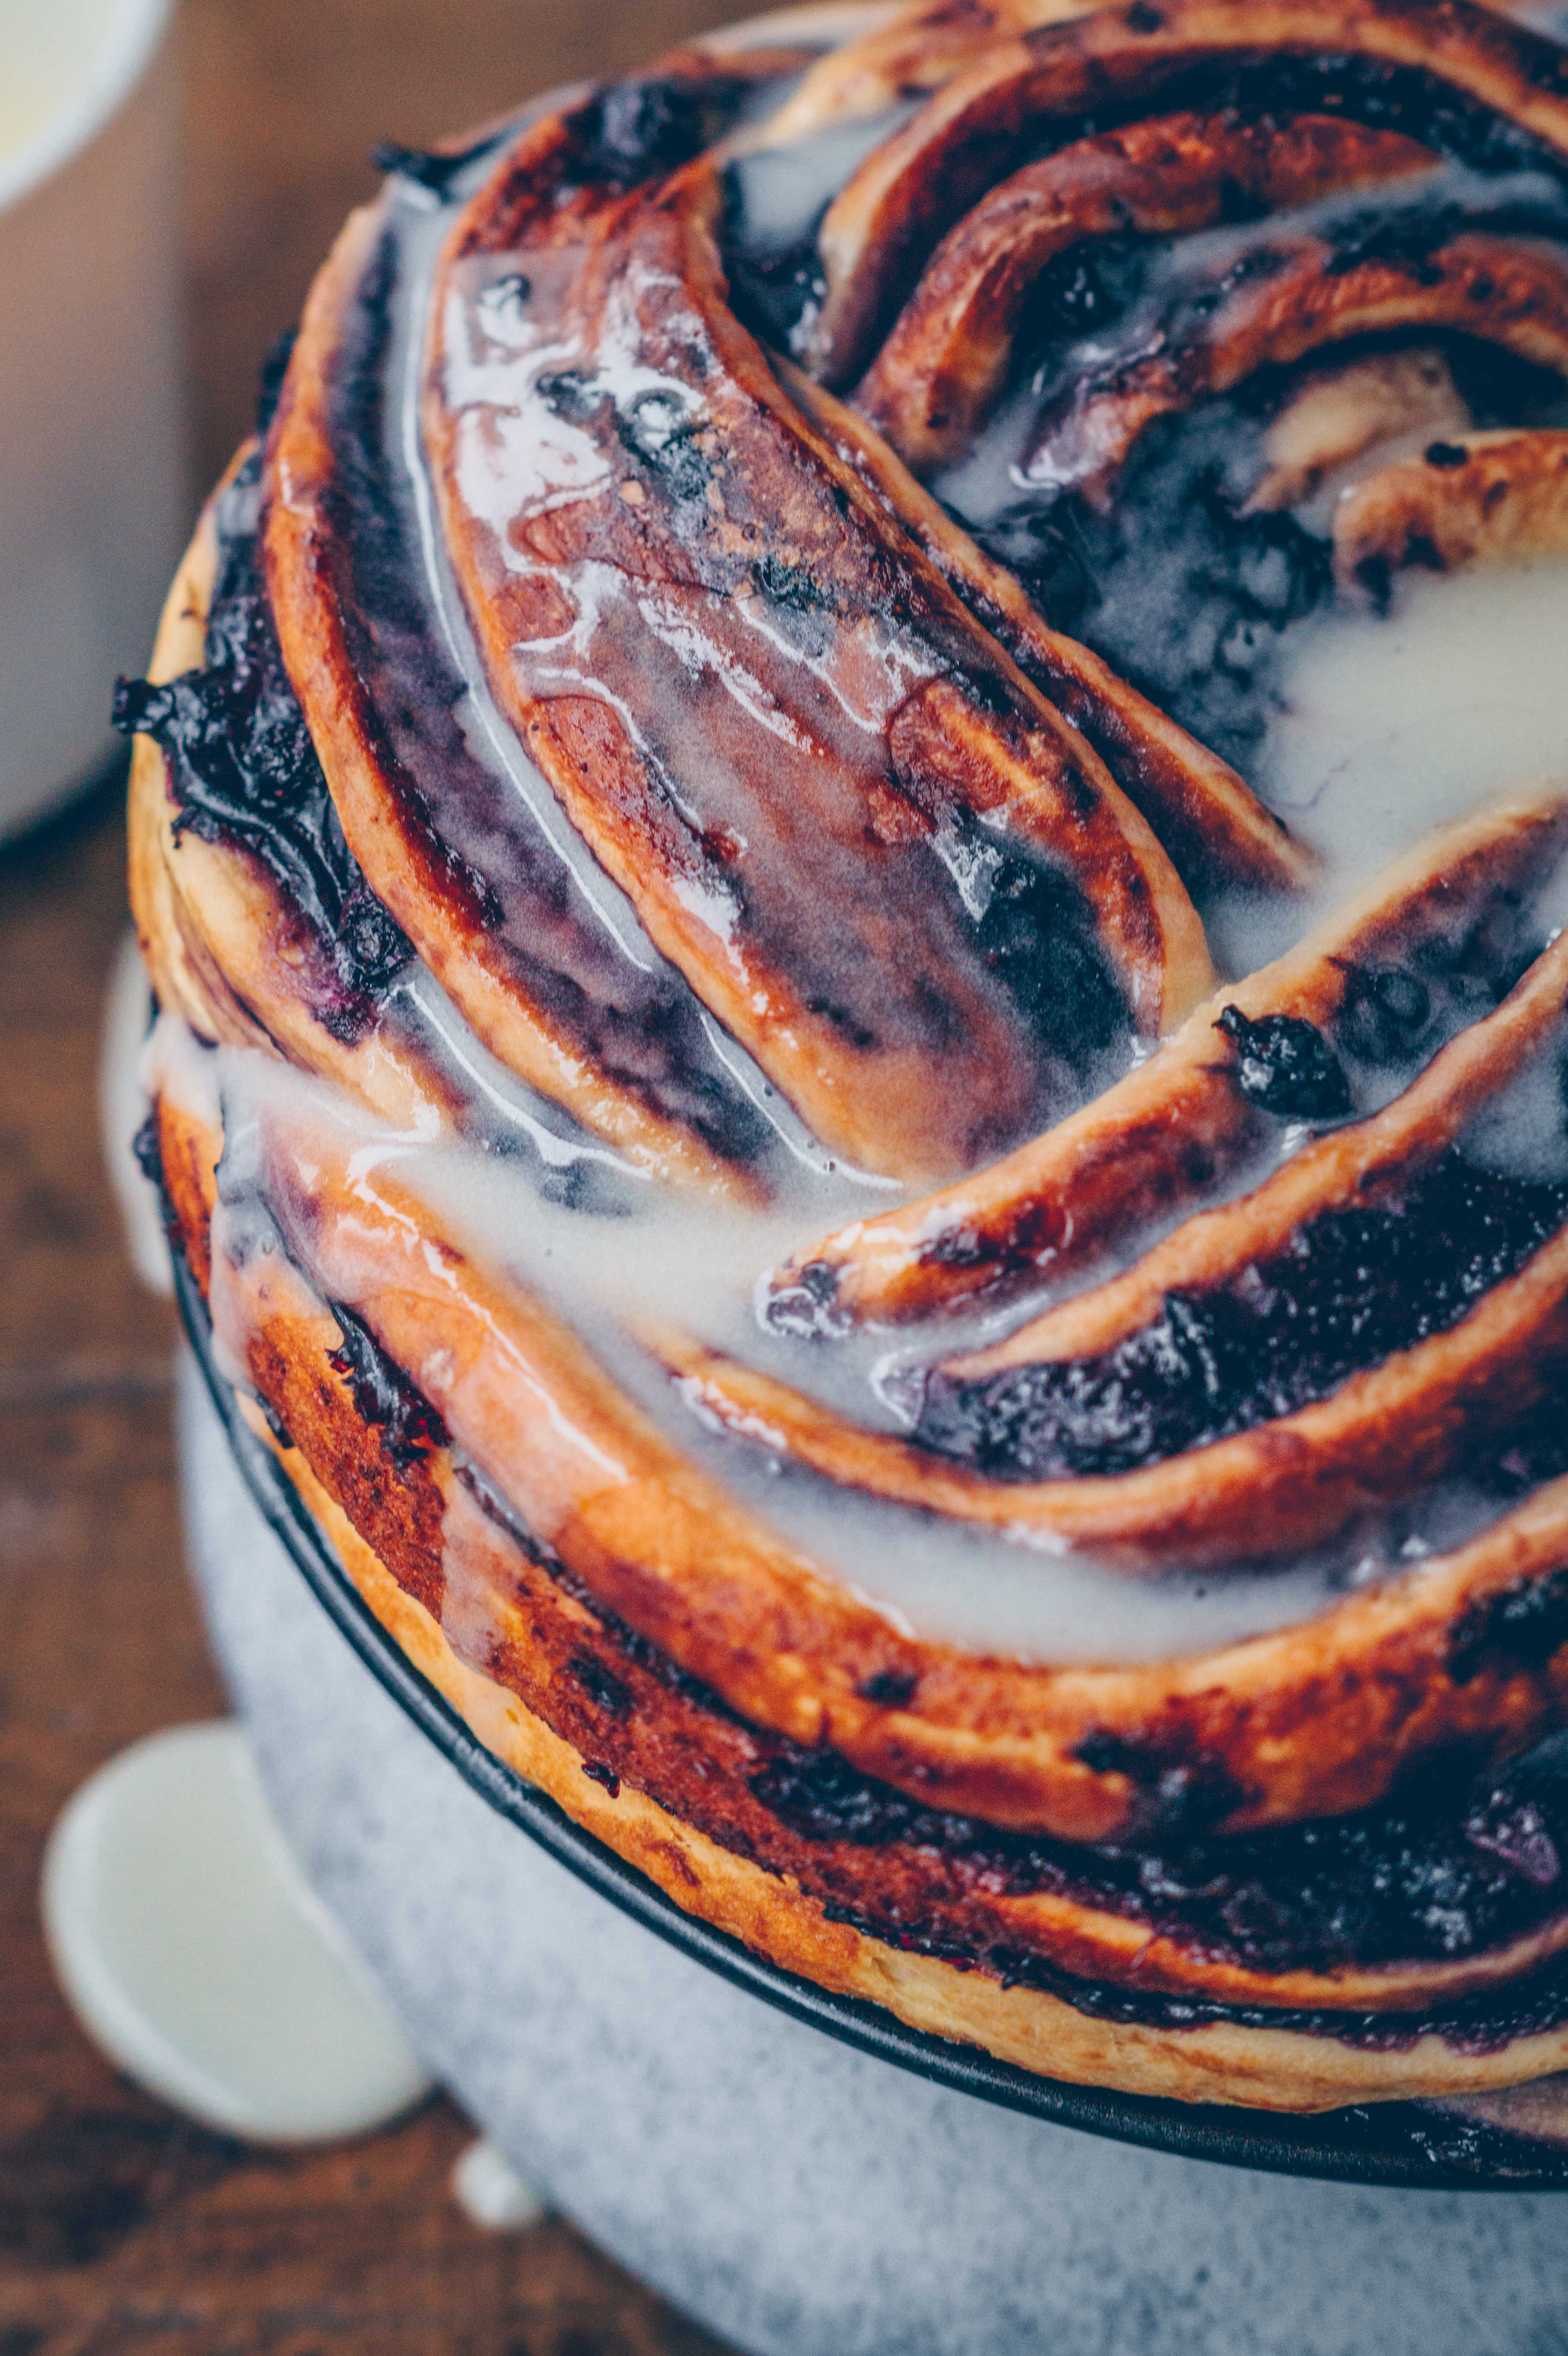 Blueberry Twist bread